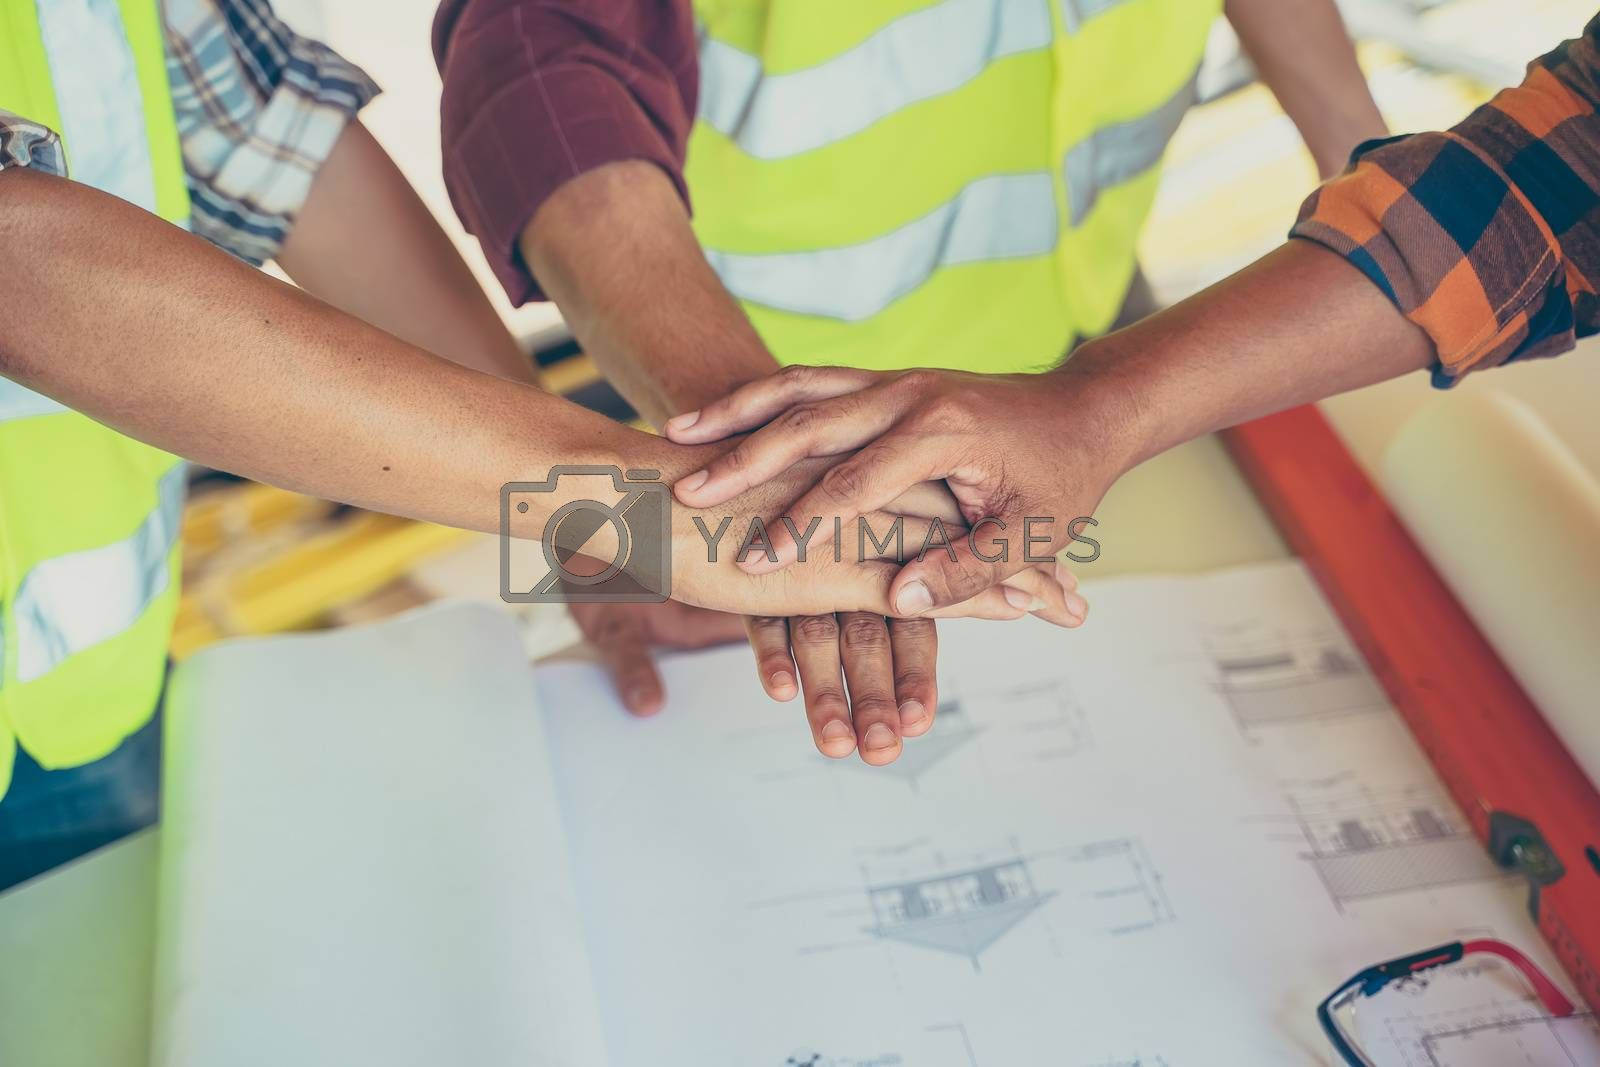 Engineers and architect join hands to build successful projects.Teamwork concept.